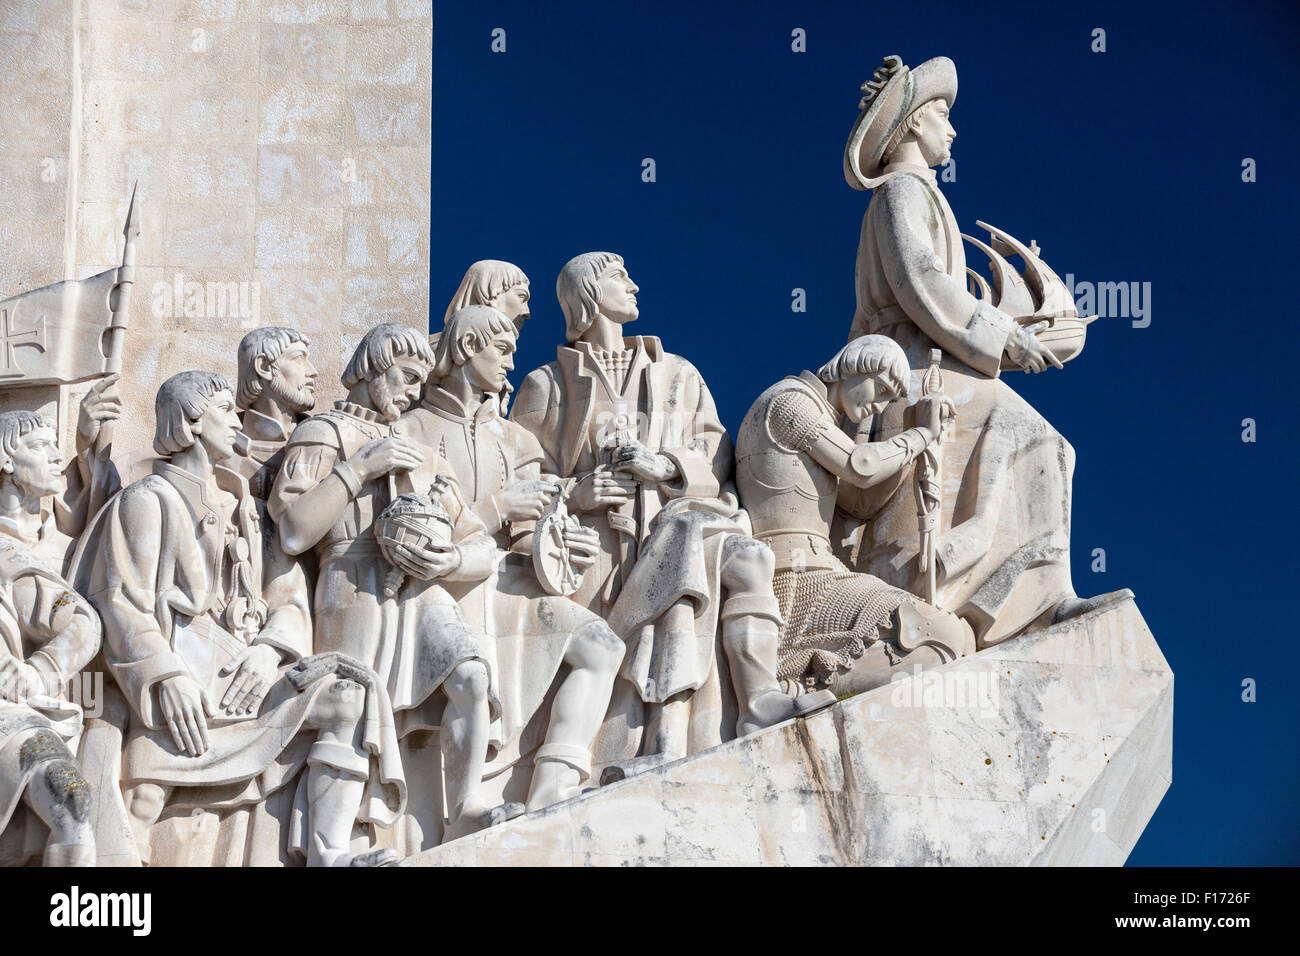 Detail of Monument to the Discoveries along the Tagus river in the Belem section of Lisbon, Portugal. Stock Photo